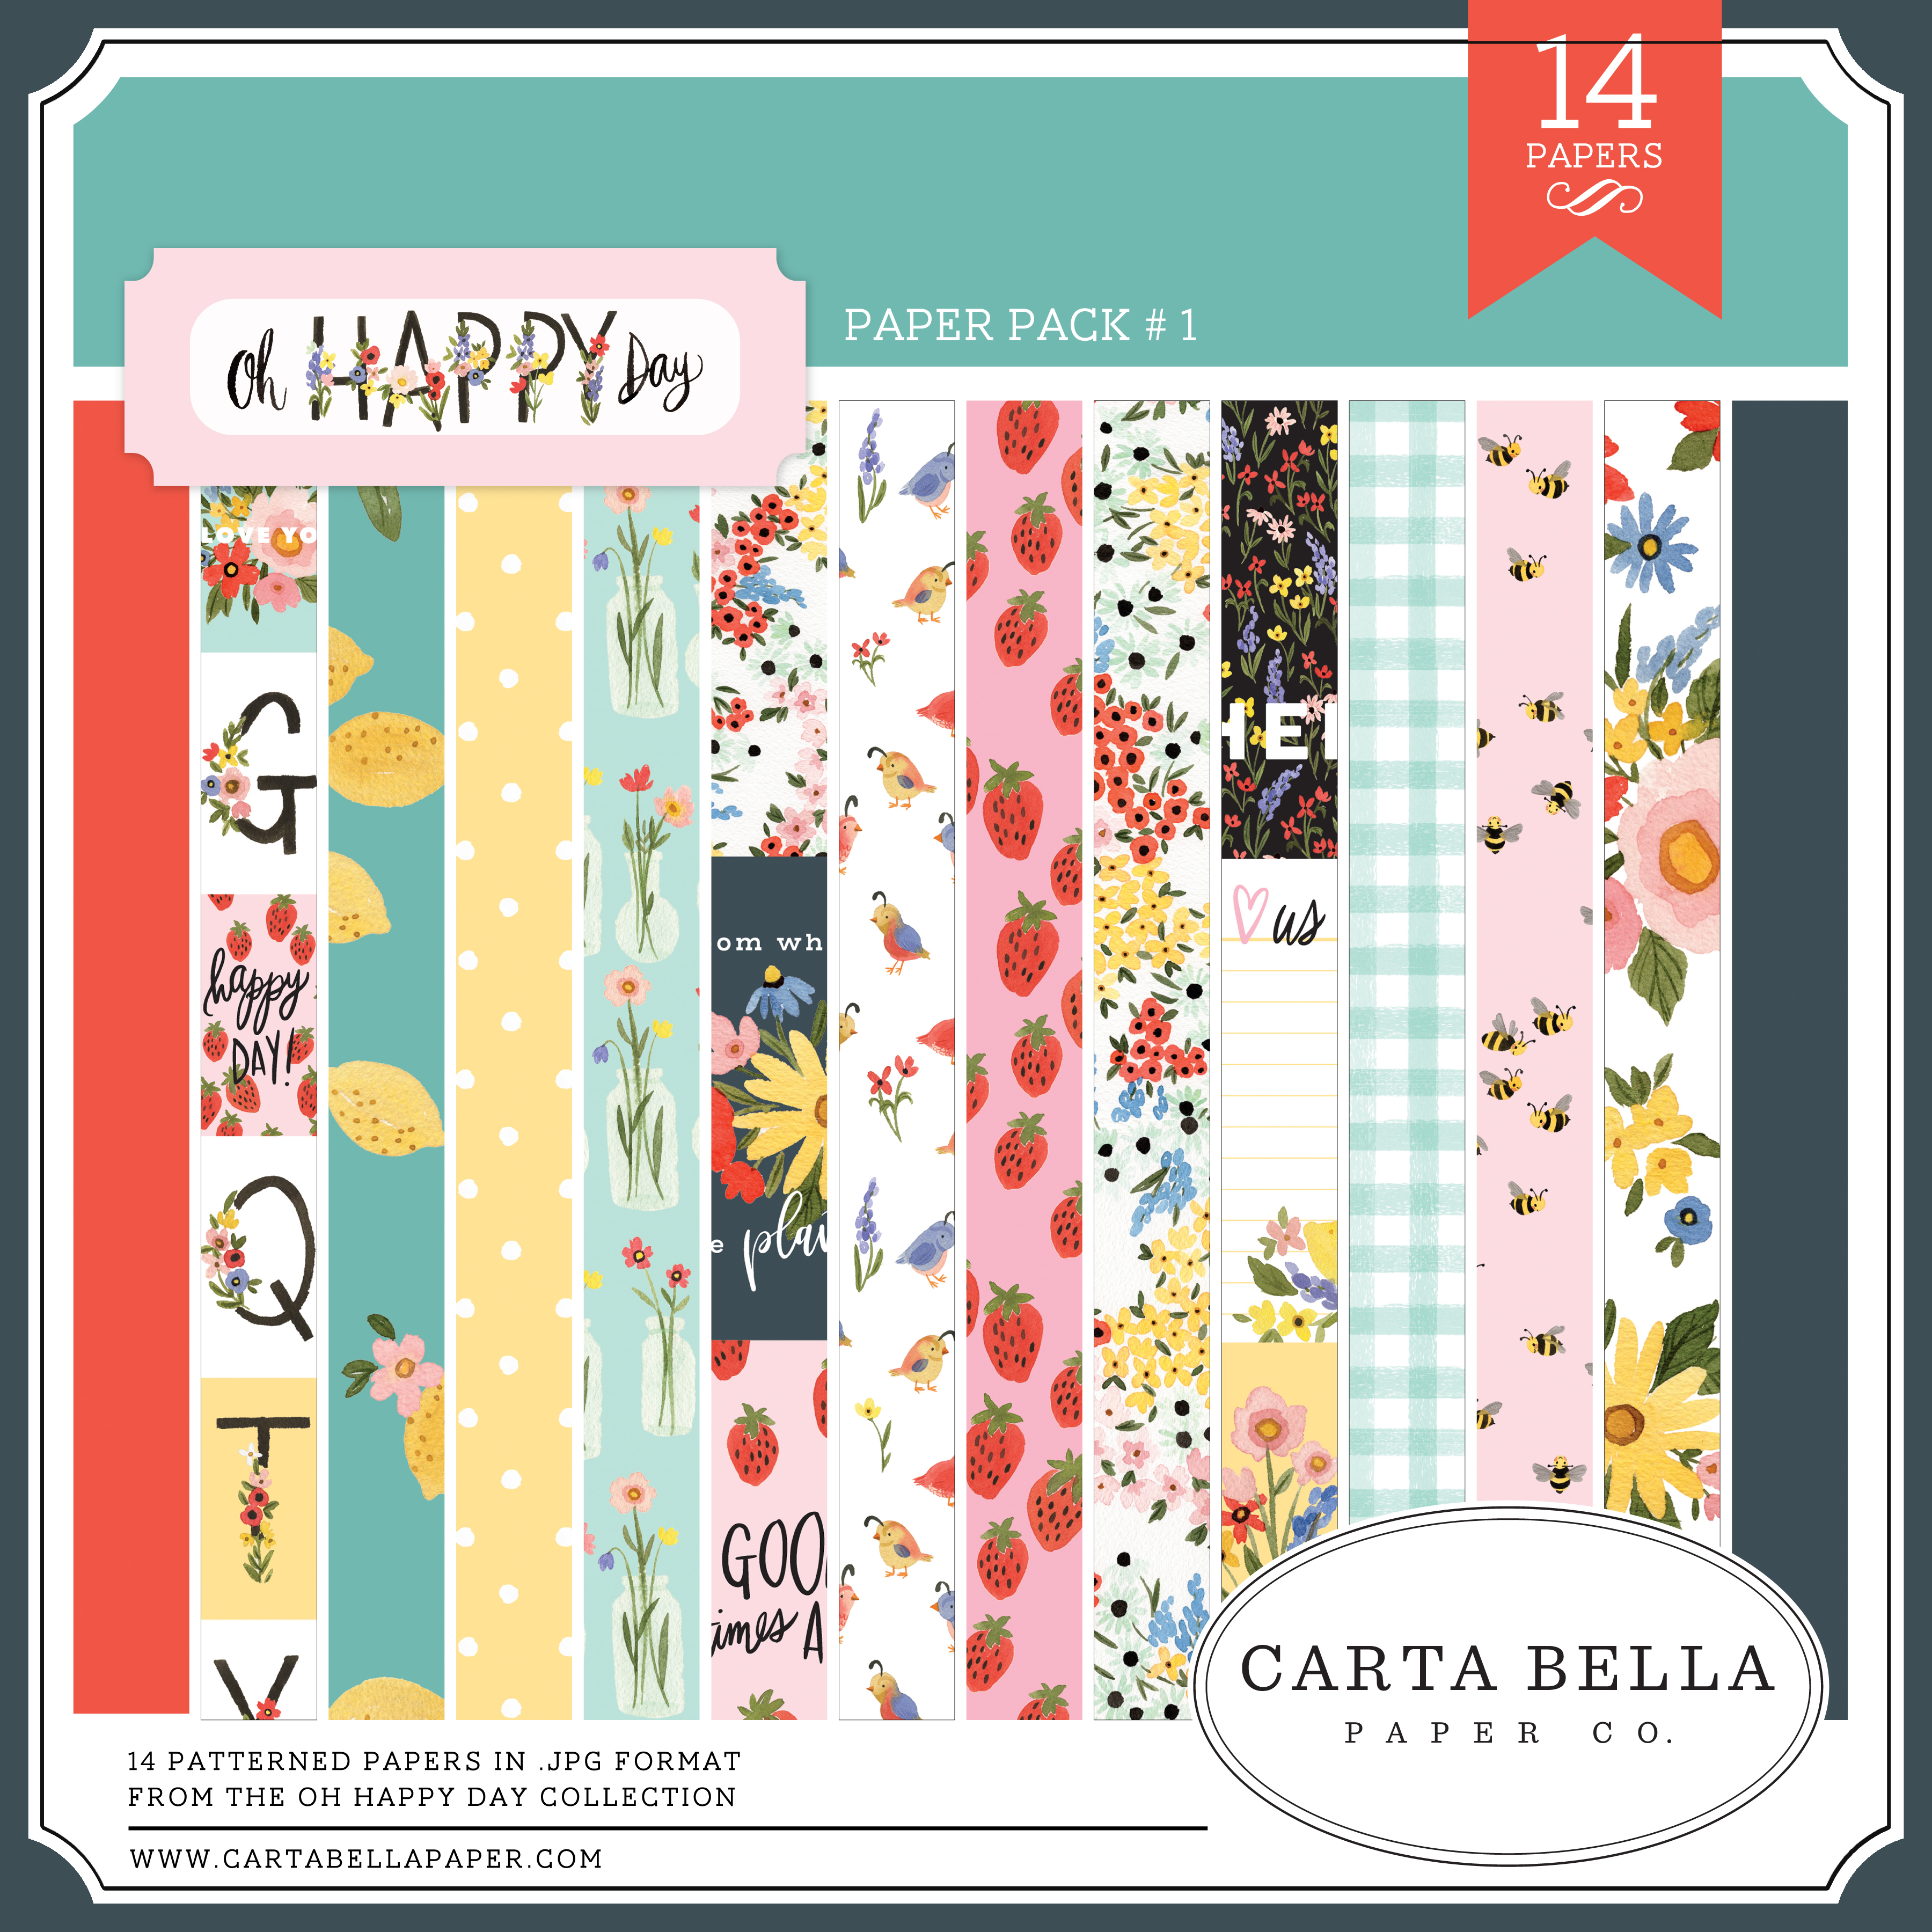 Oh Happy Day Paper Pack #1